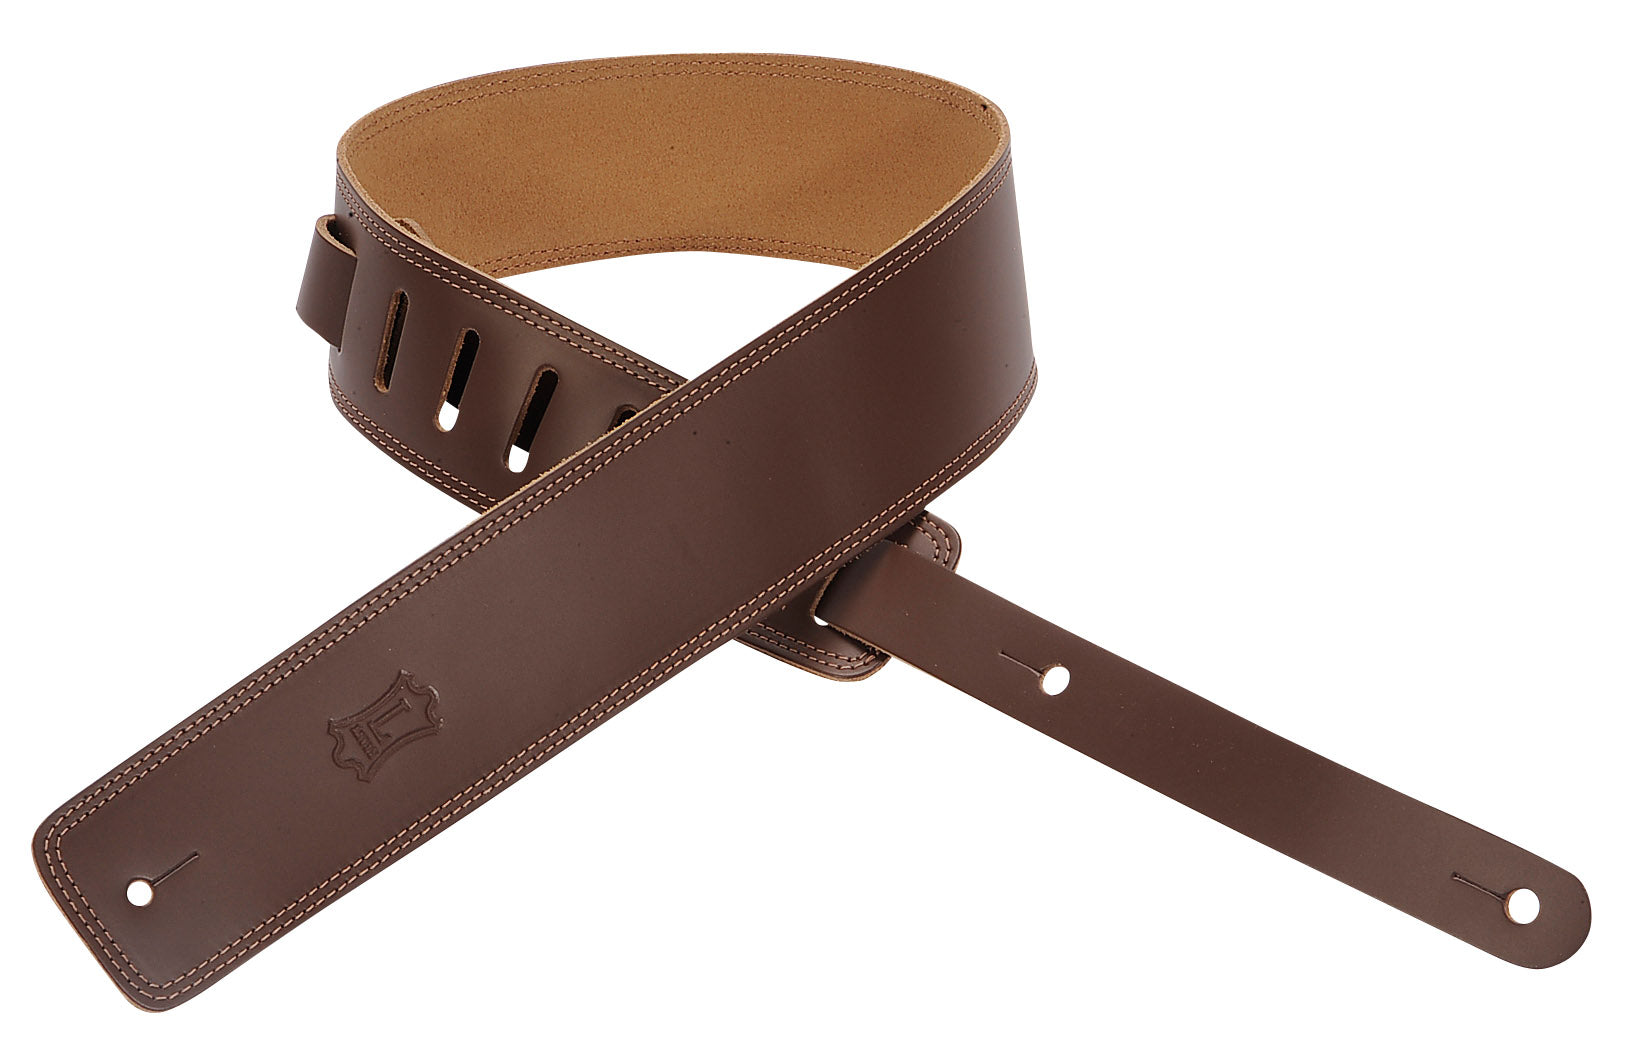 "LEVY'S 2.5"" LEATHER GUITAR STRAP WITH DOUBLE STITCH BROWN+C274"